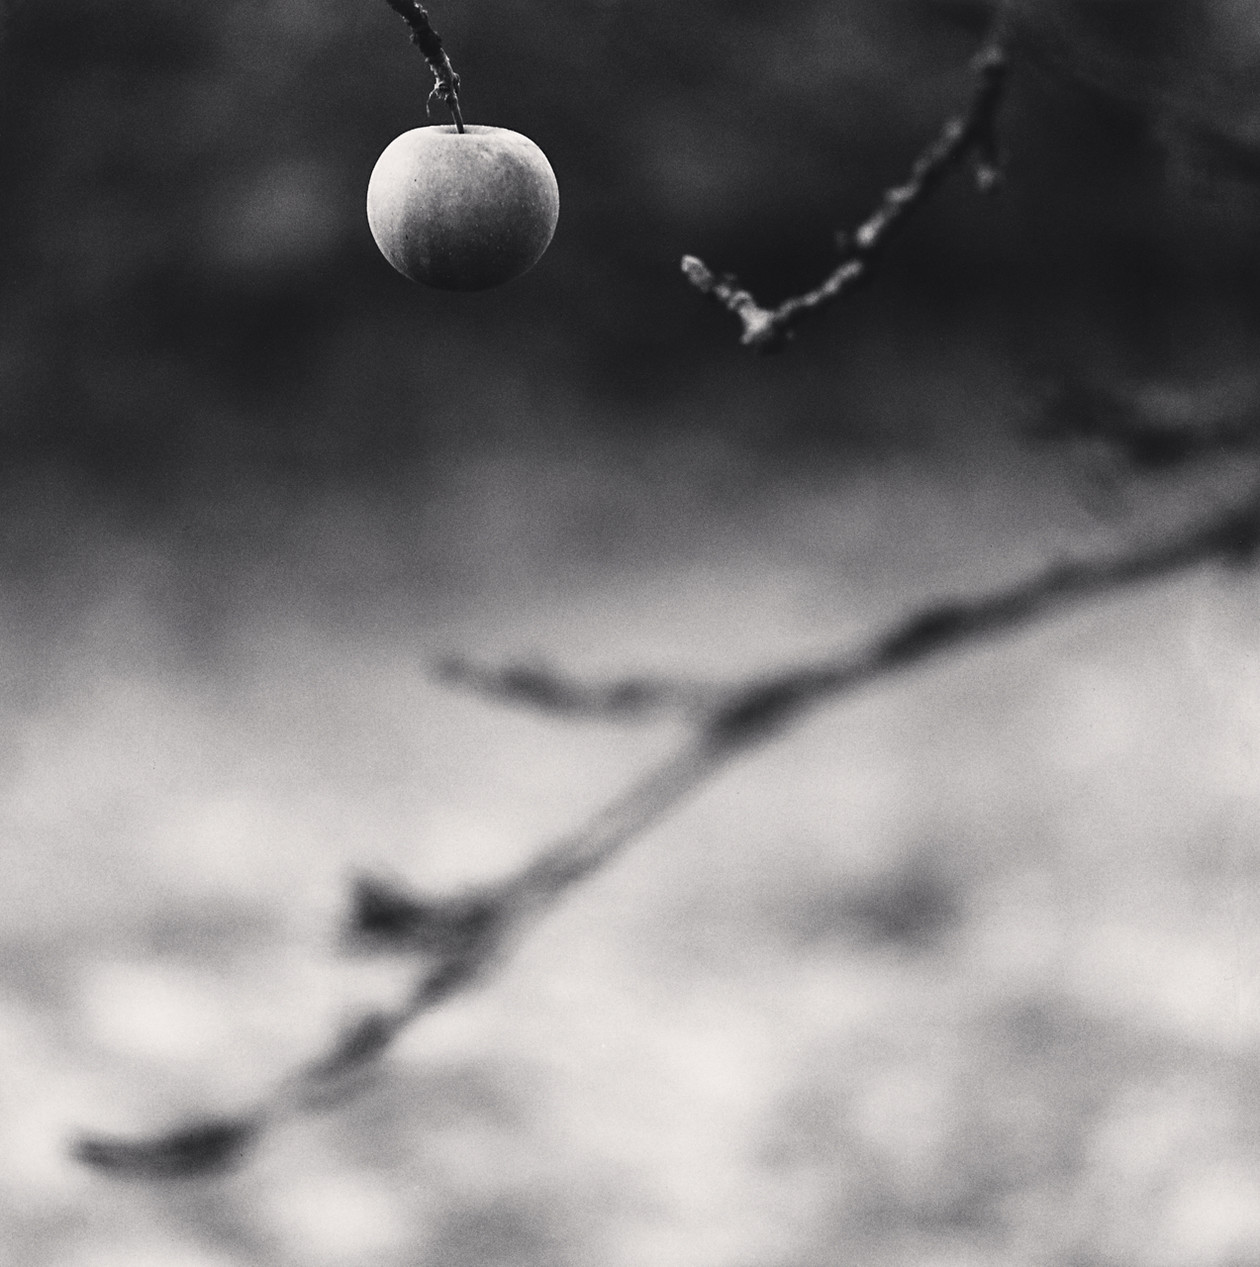 Winter Apple, Chateau de Haoure, Lorraine (2013) by Michael Kenna